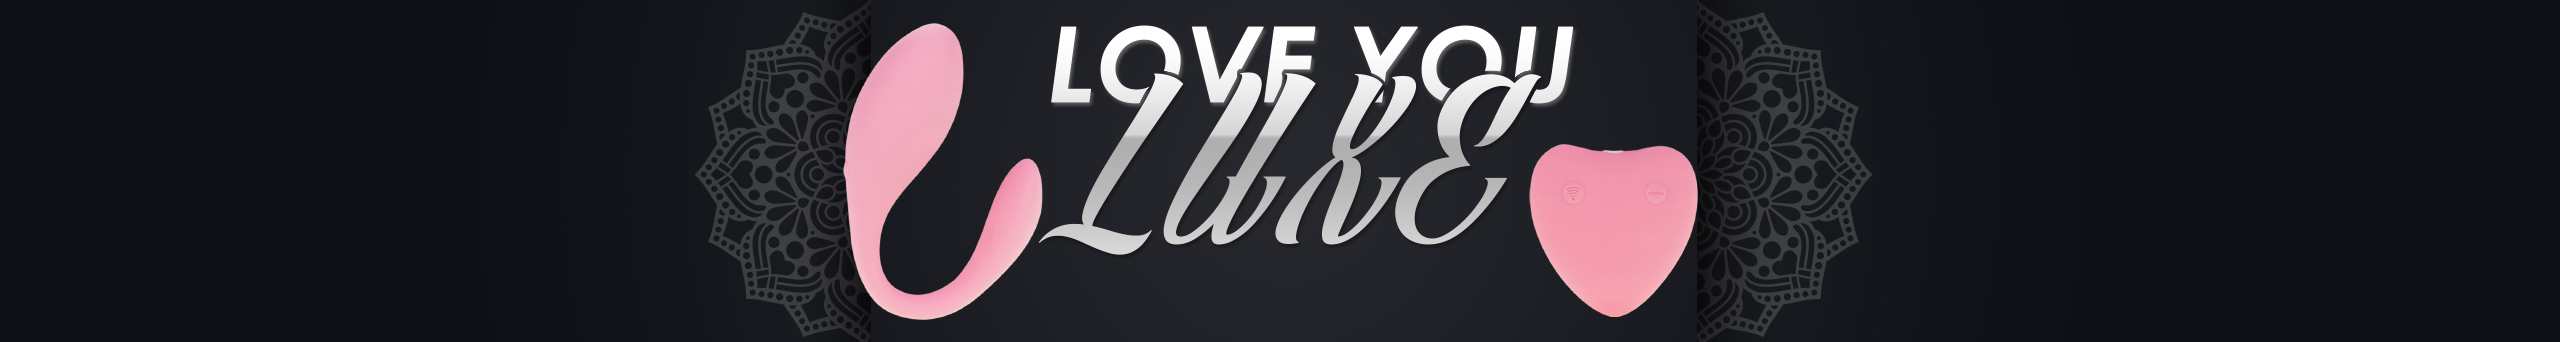 Love Luxe